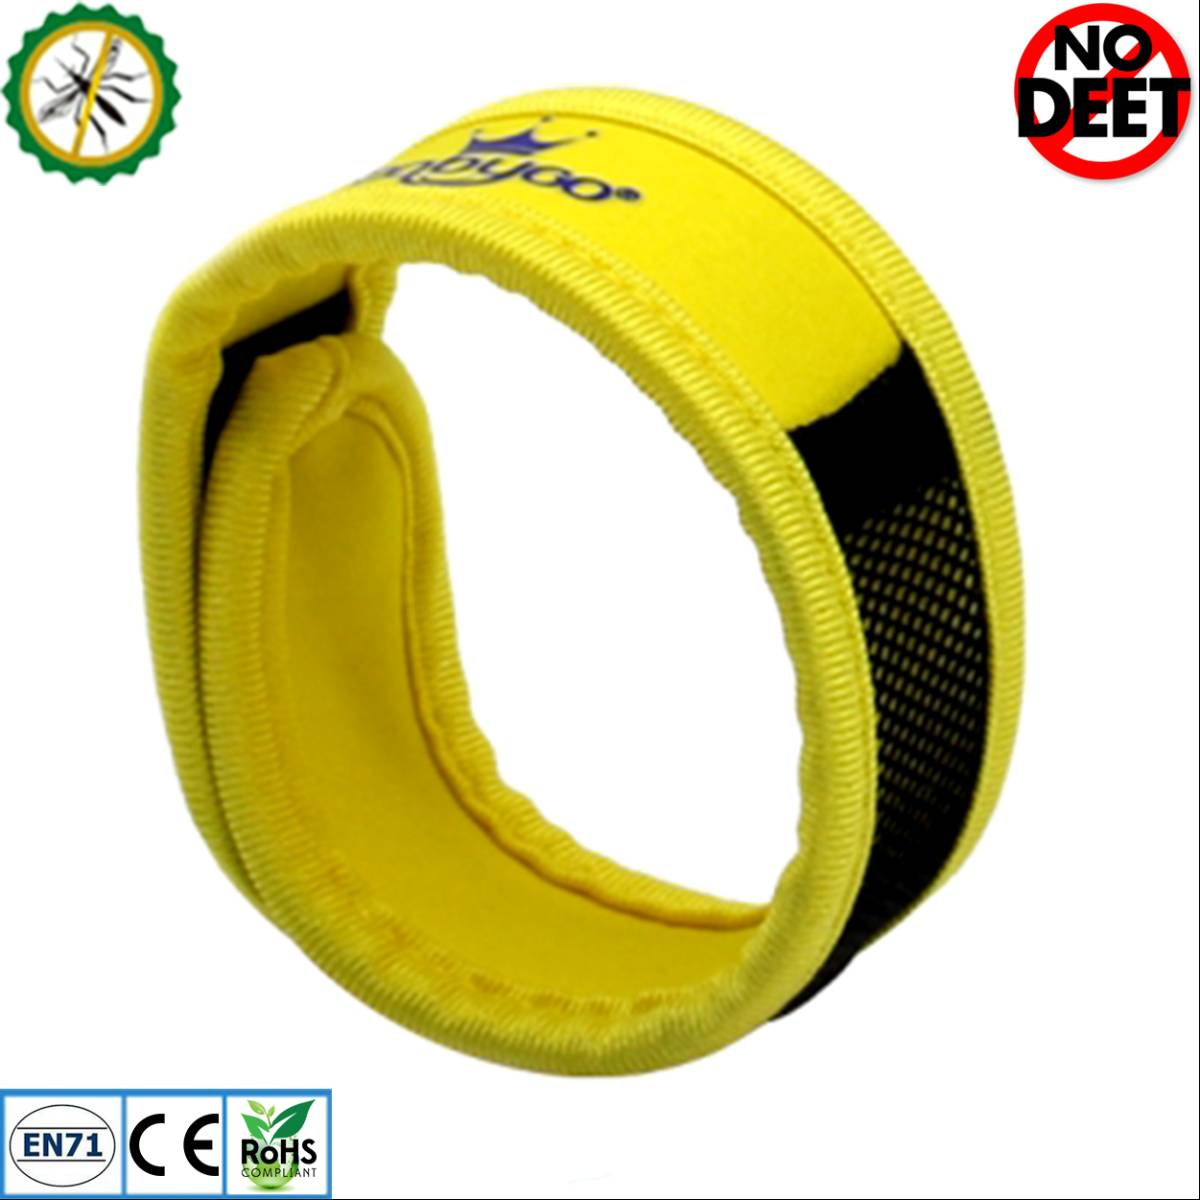 Babygo Neoprene Mosquito Repellent Wristband Yellow (gelang Anti Nyamuk)0